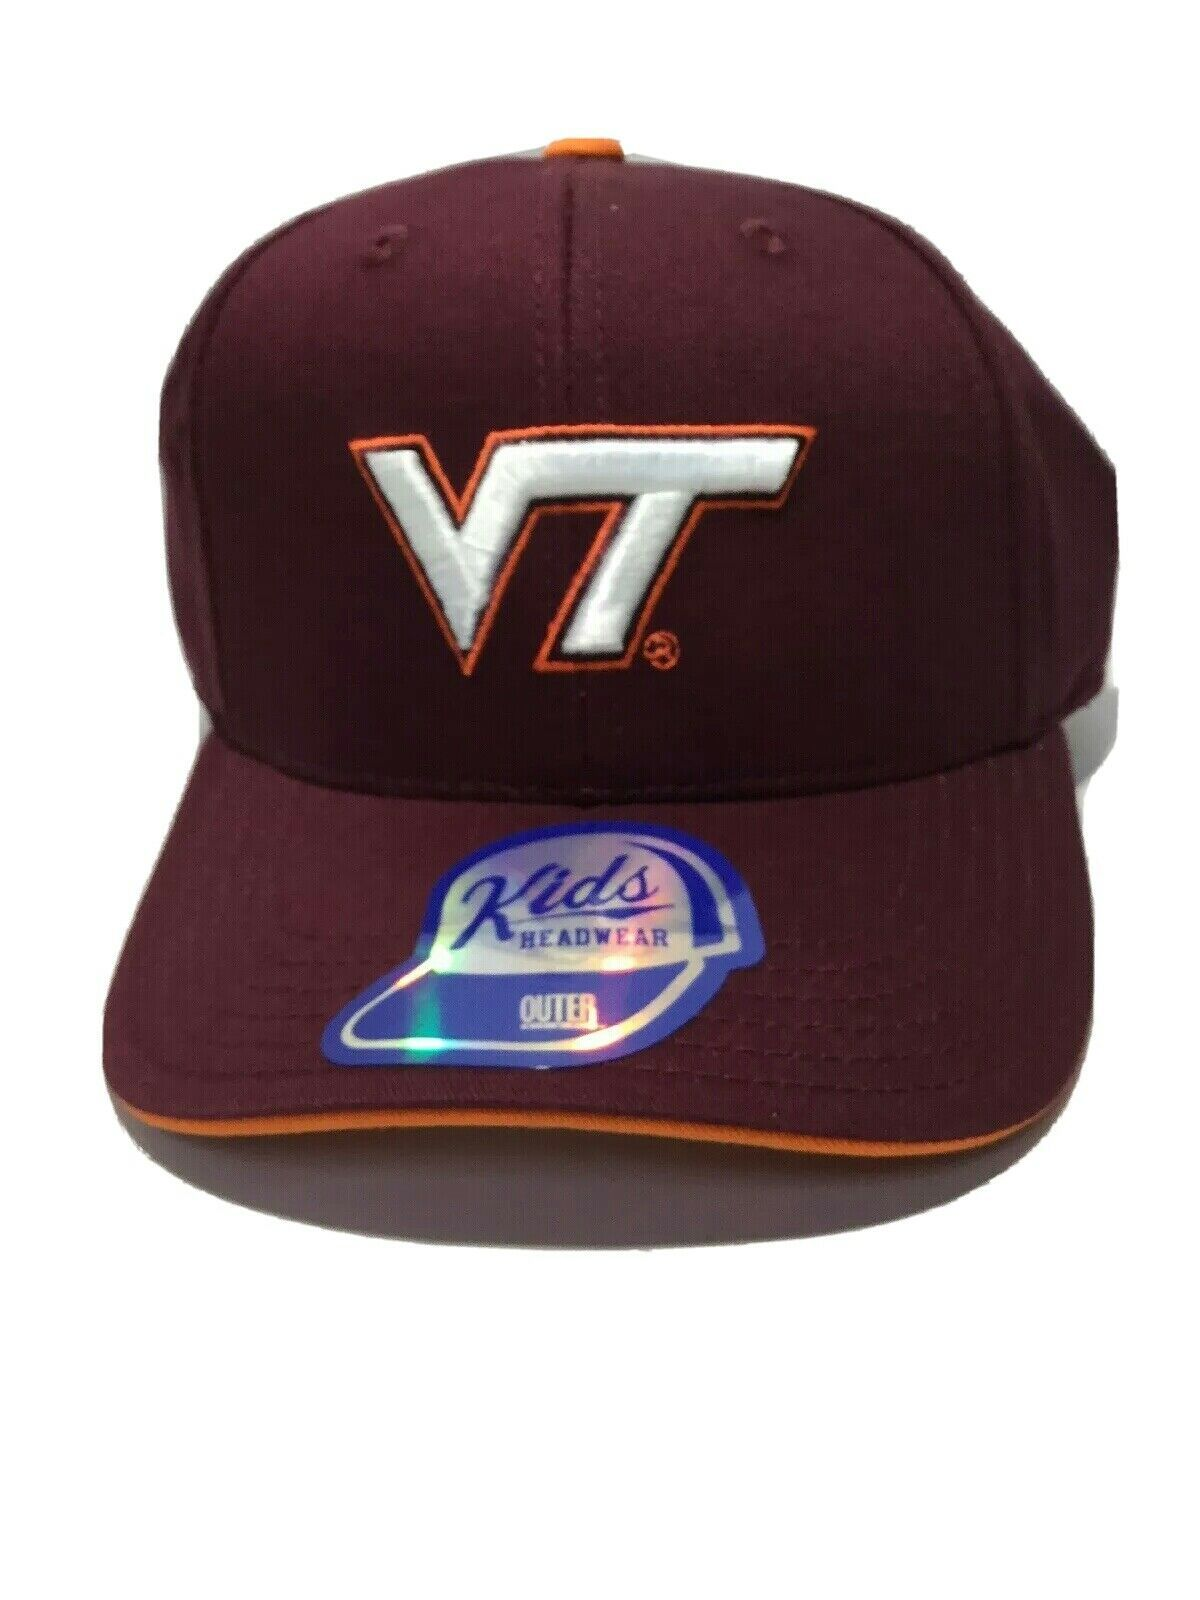 ZHATS NCAA Kids Youth M15 Fitted Hat Virginia Tech Hokies Maroon New - $13.09